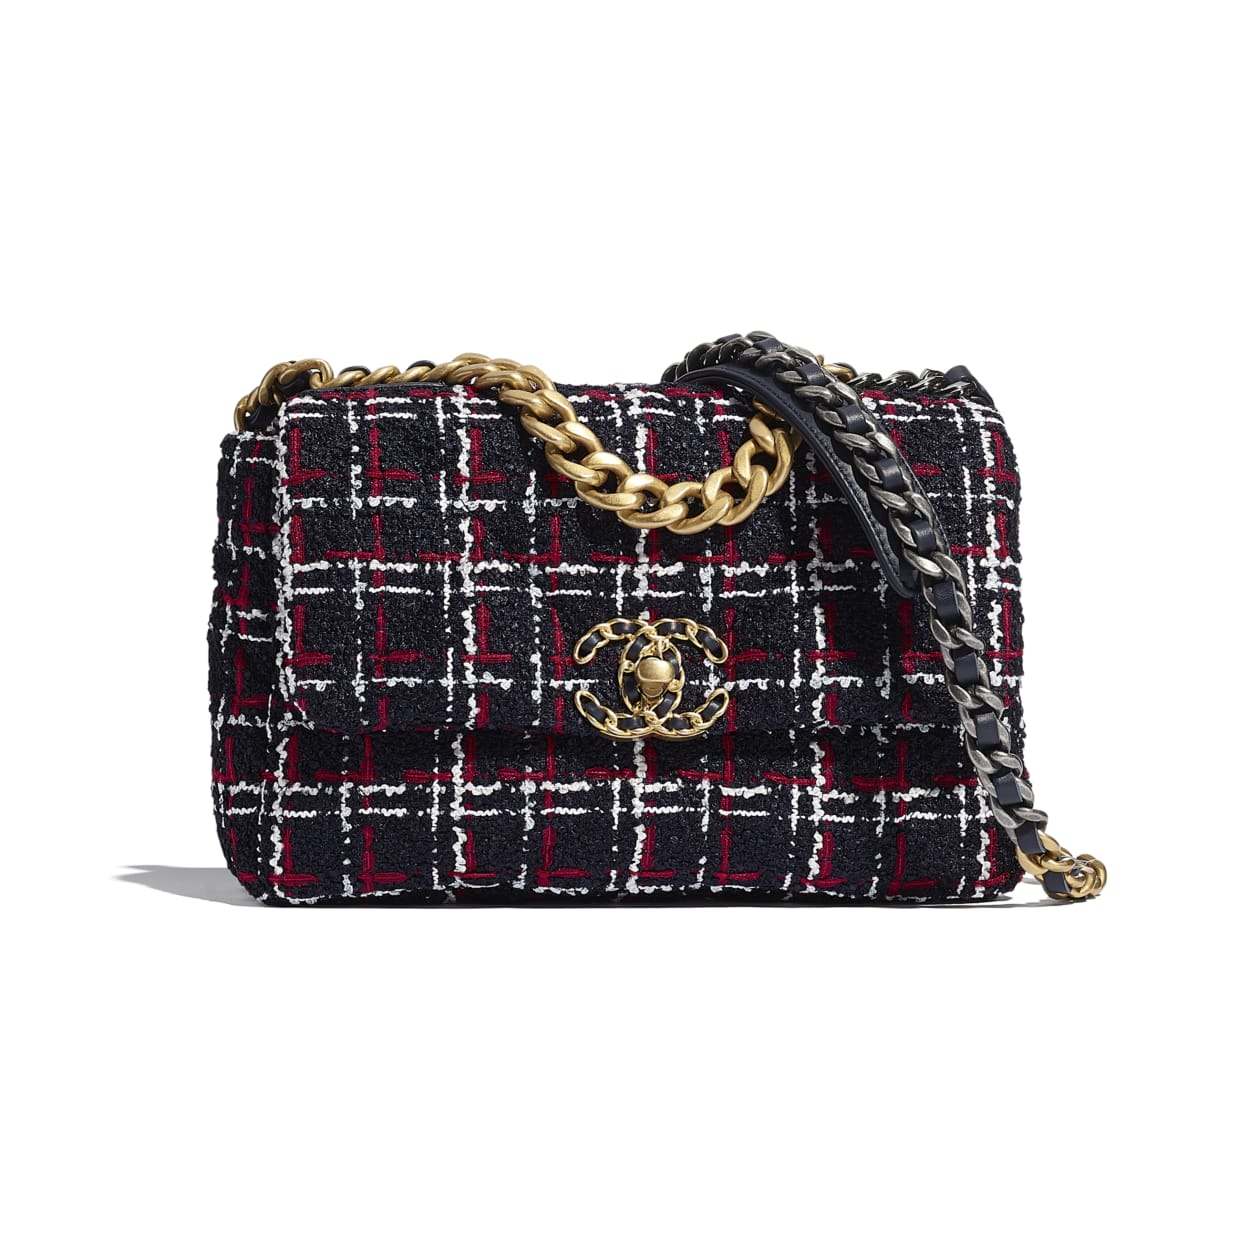 red, black and white tweed chanel 19